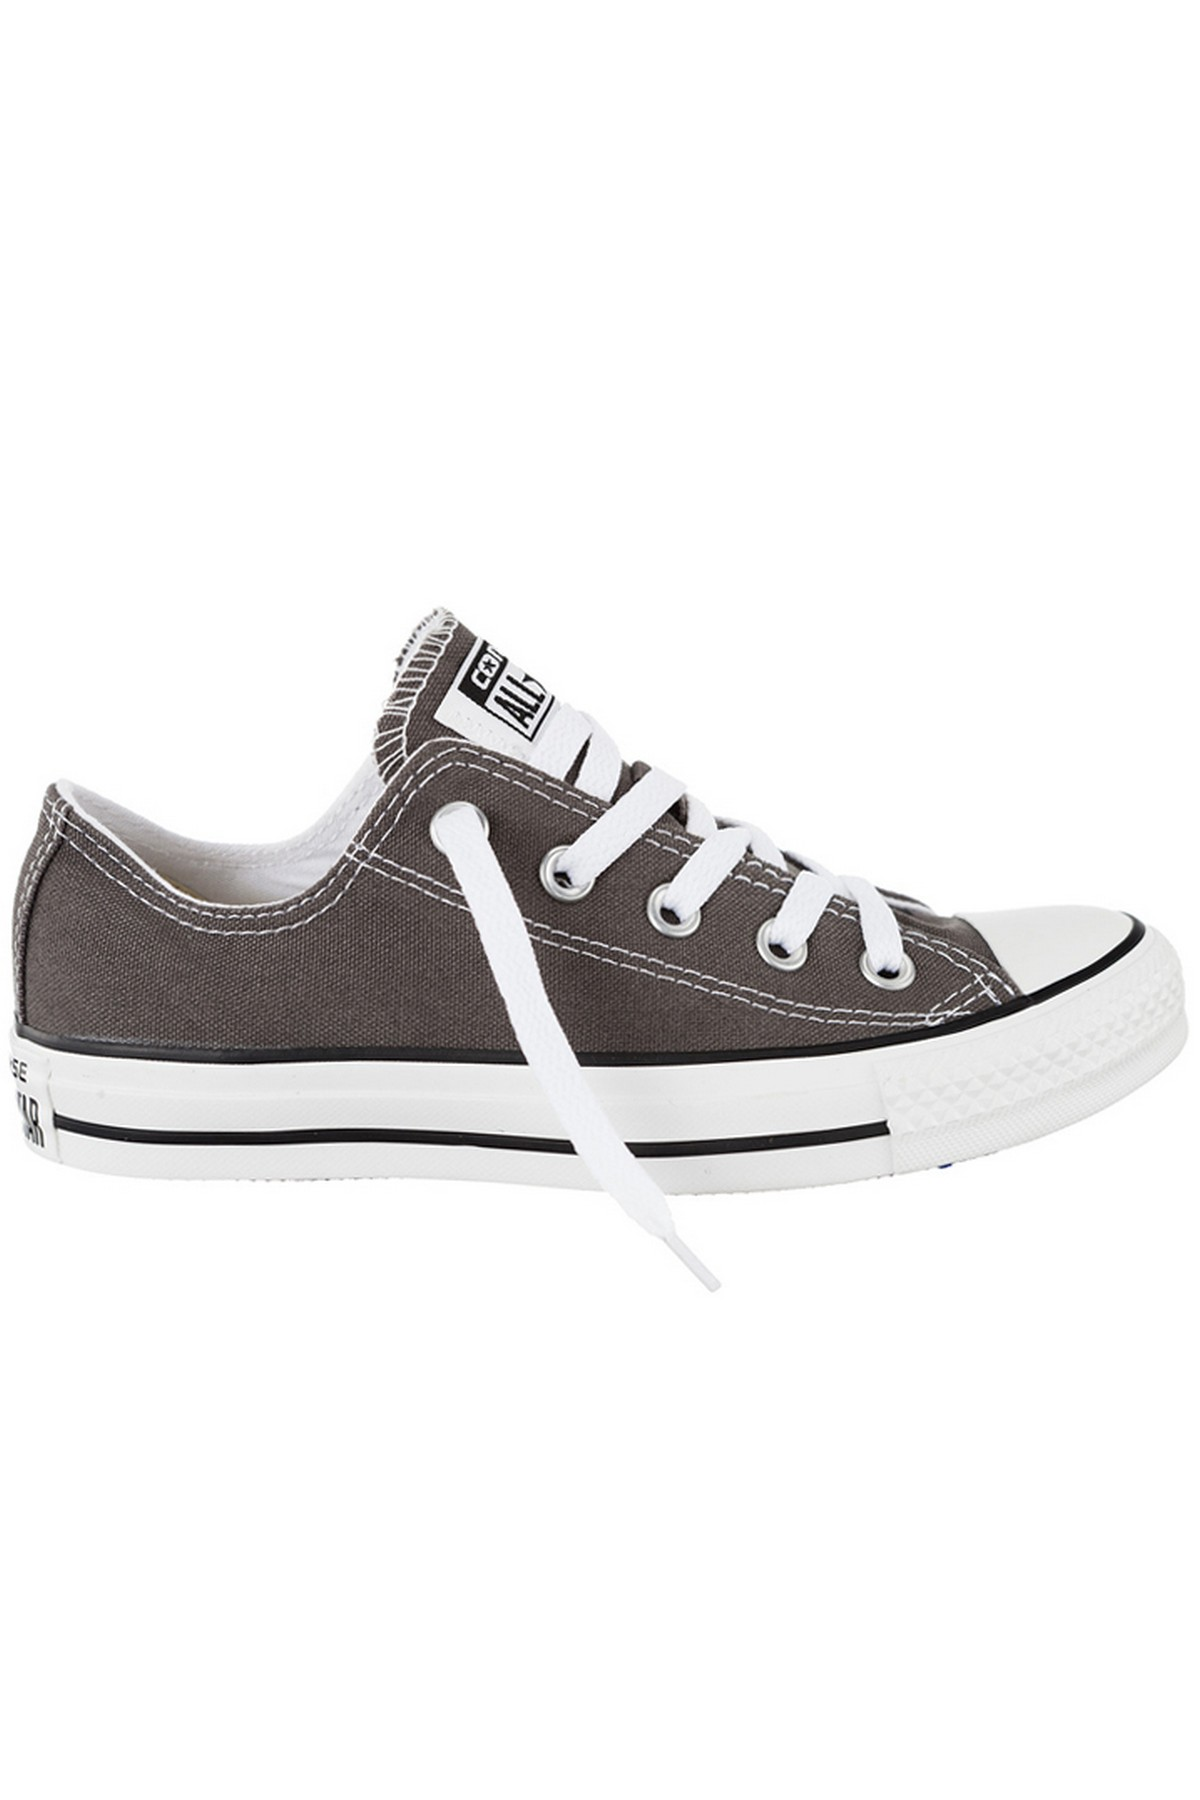 Converse Chuck Taylor All Star Unisex Gri Sneaker (1J794C)